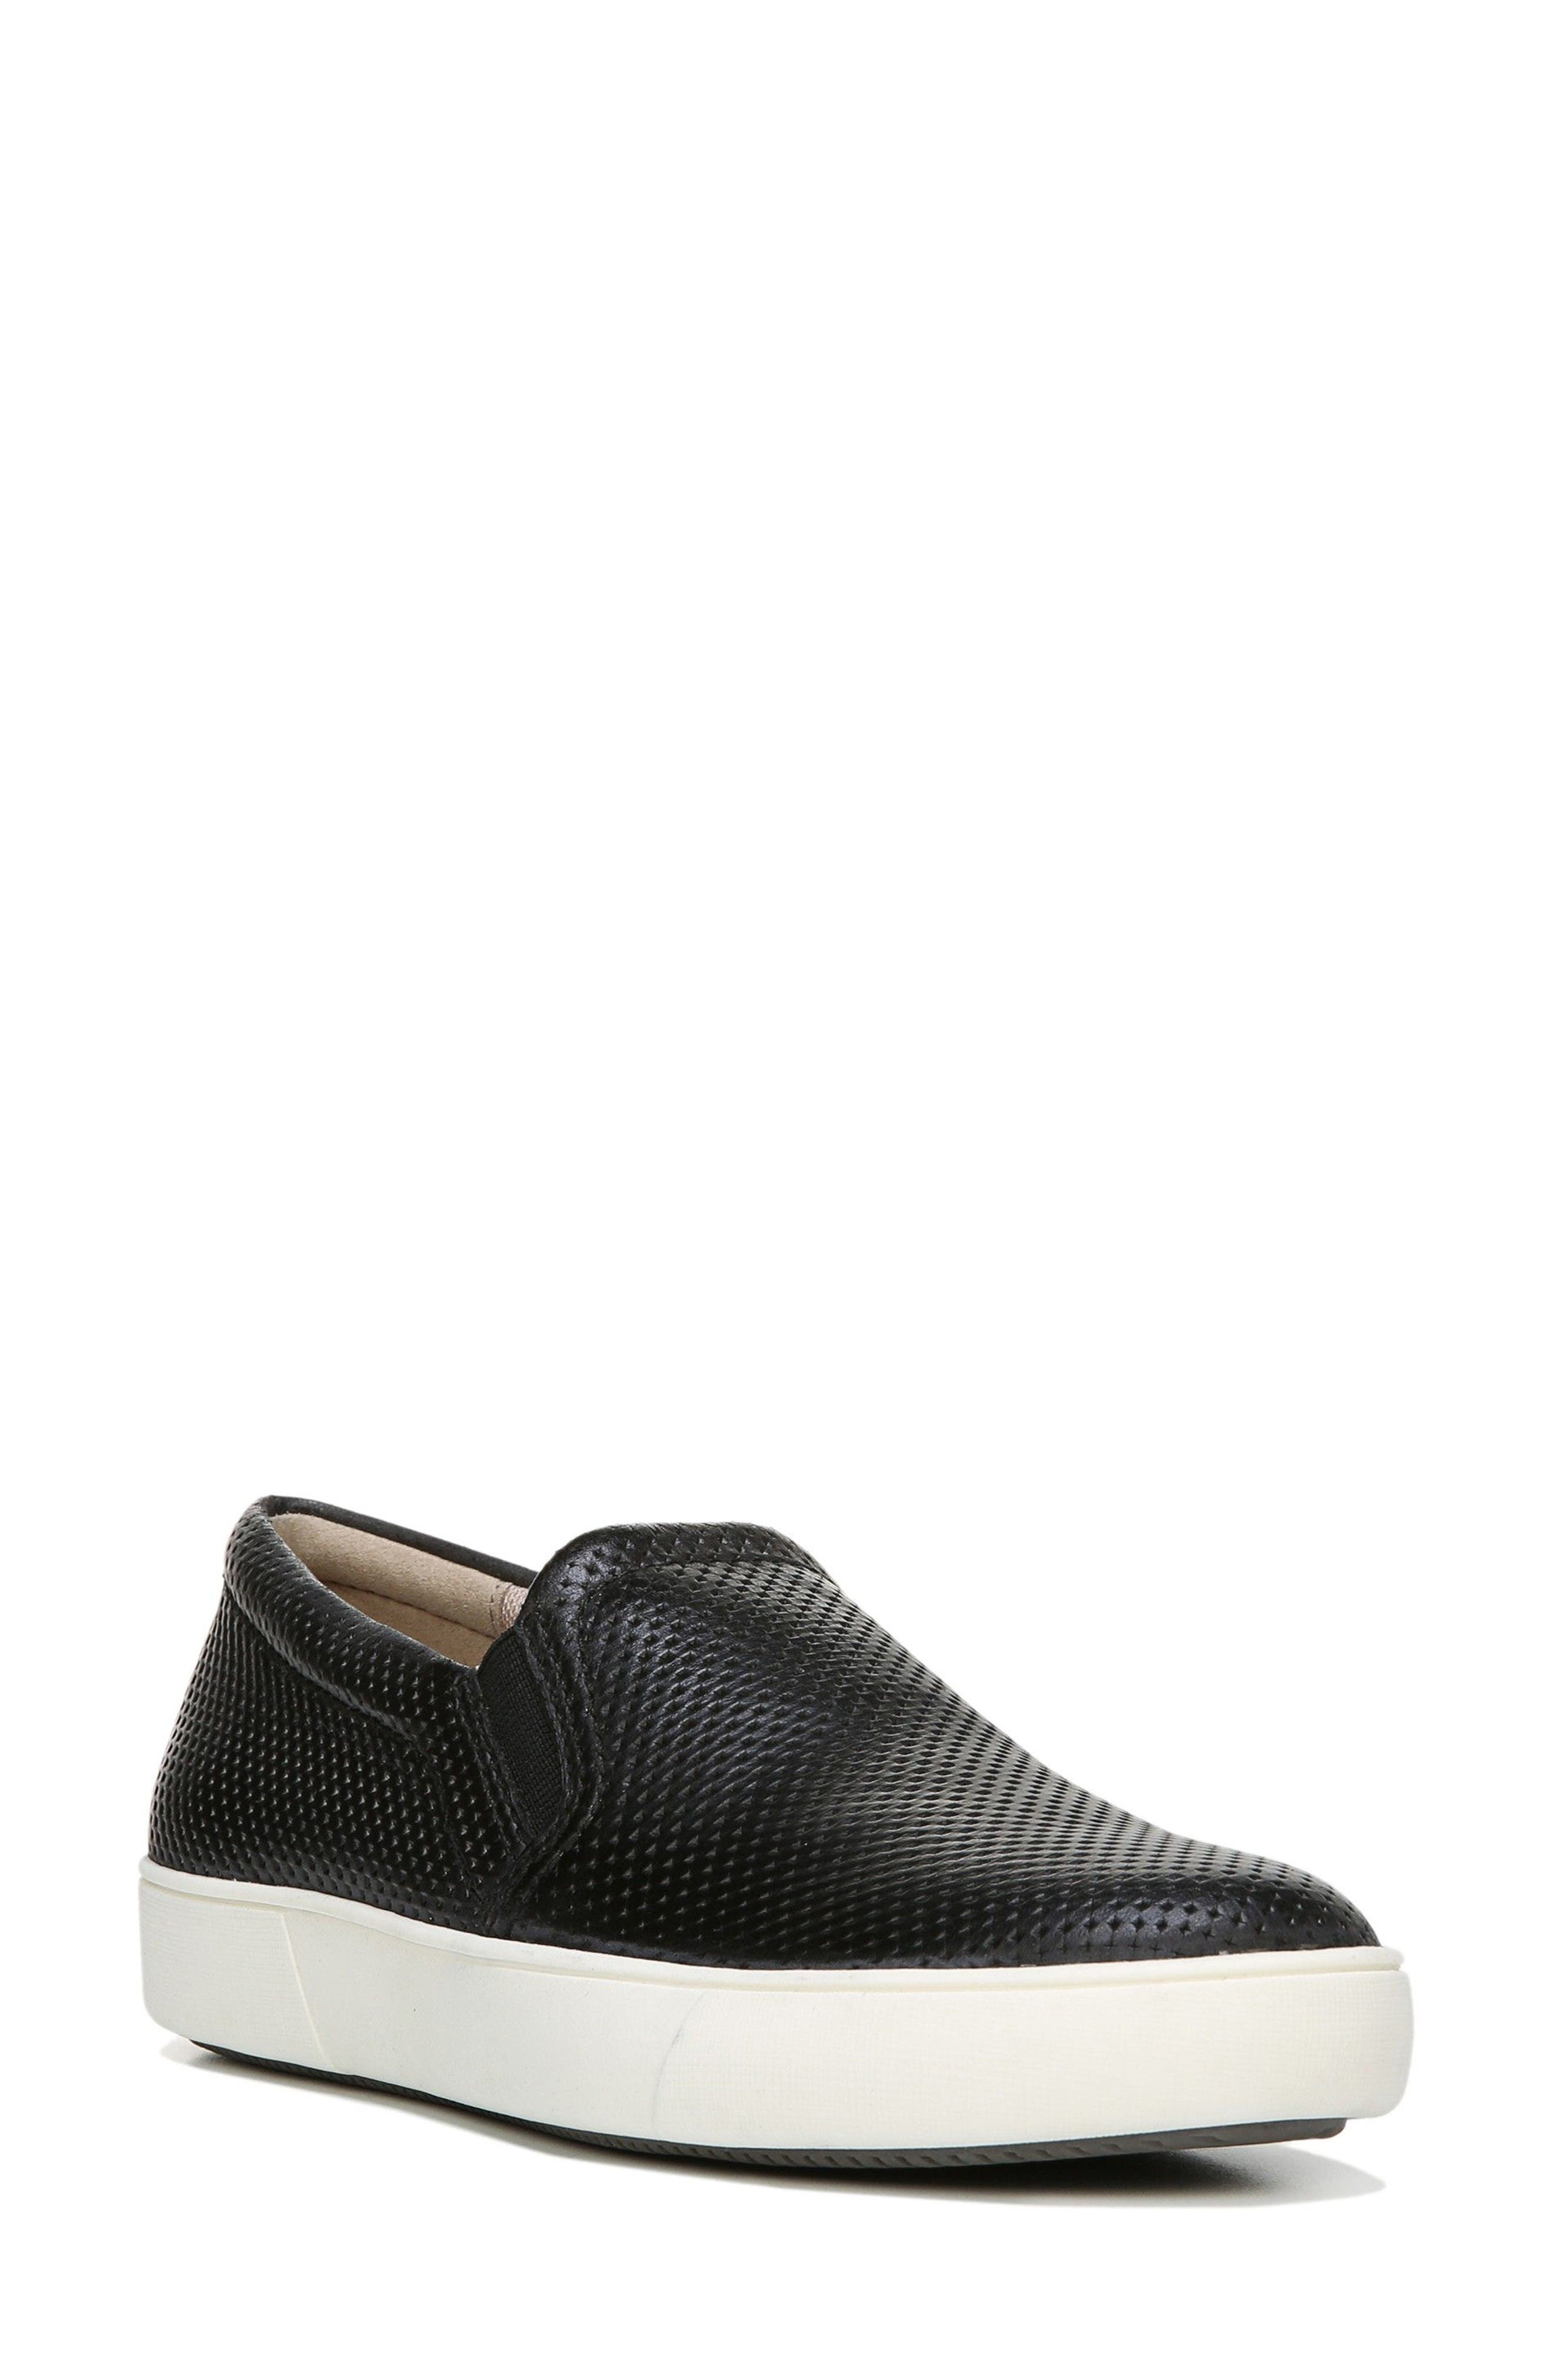 Marianne Sneaker,                         Main,                         color, BLACK LEATHER